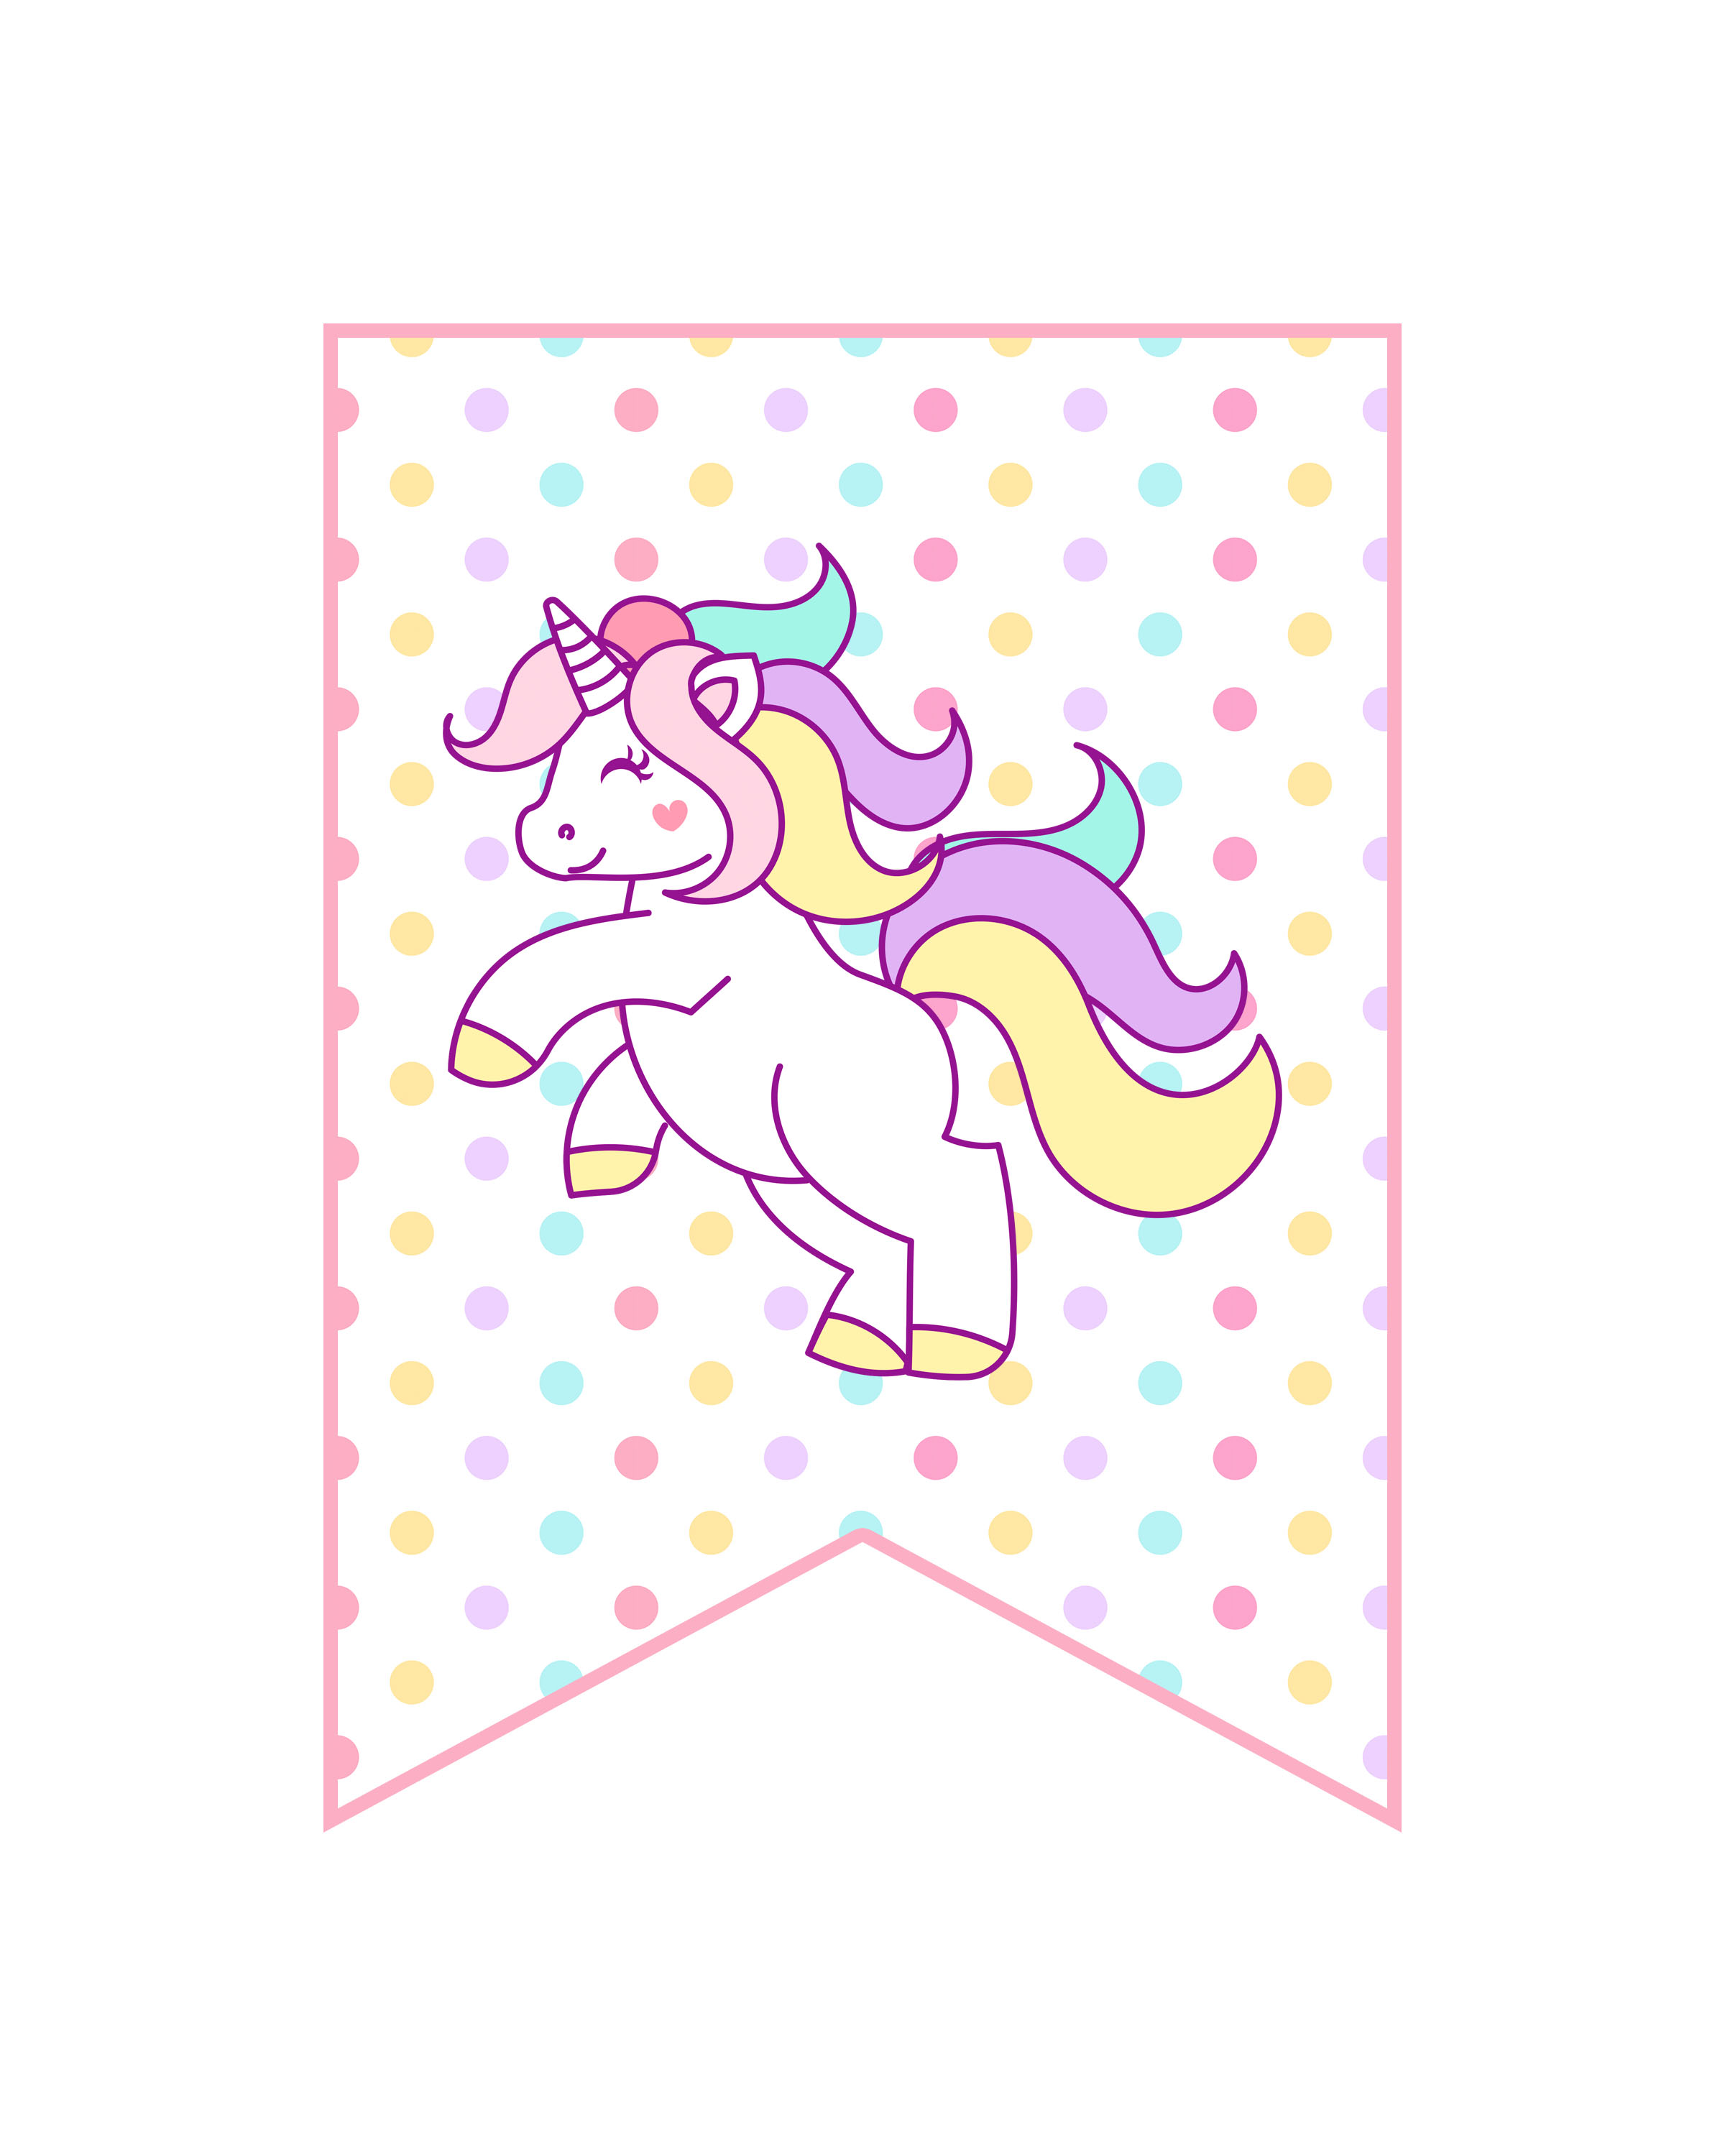 graphic relating to Free Printable Unicorn known as Free of charge Printable Unicorn Get together Decorations Pack - The Cottage